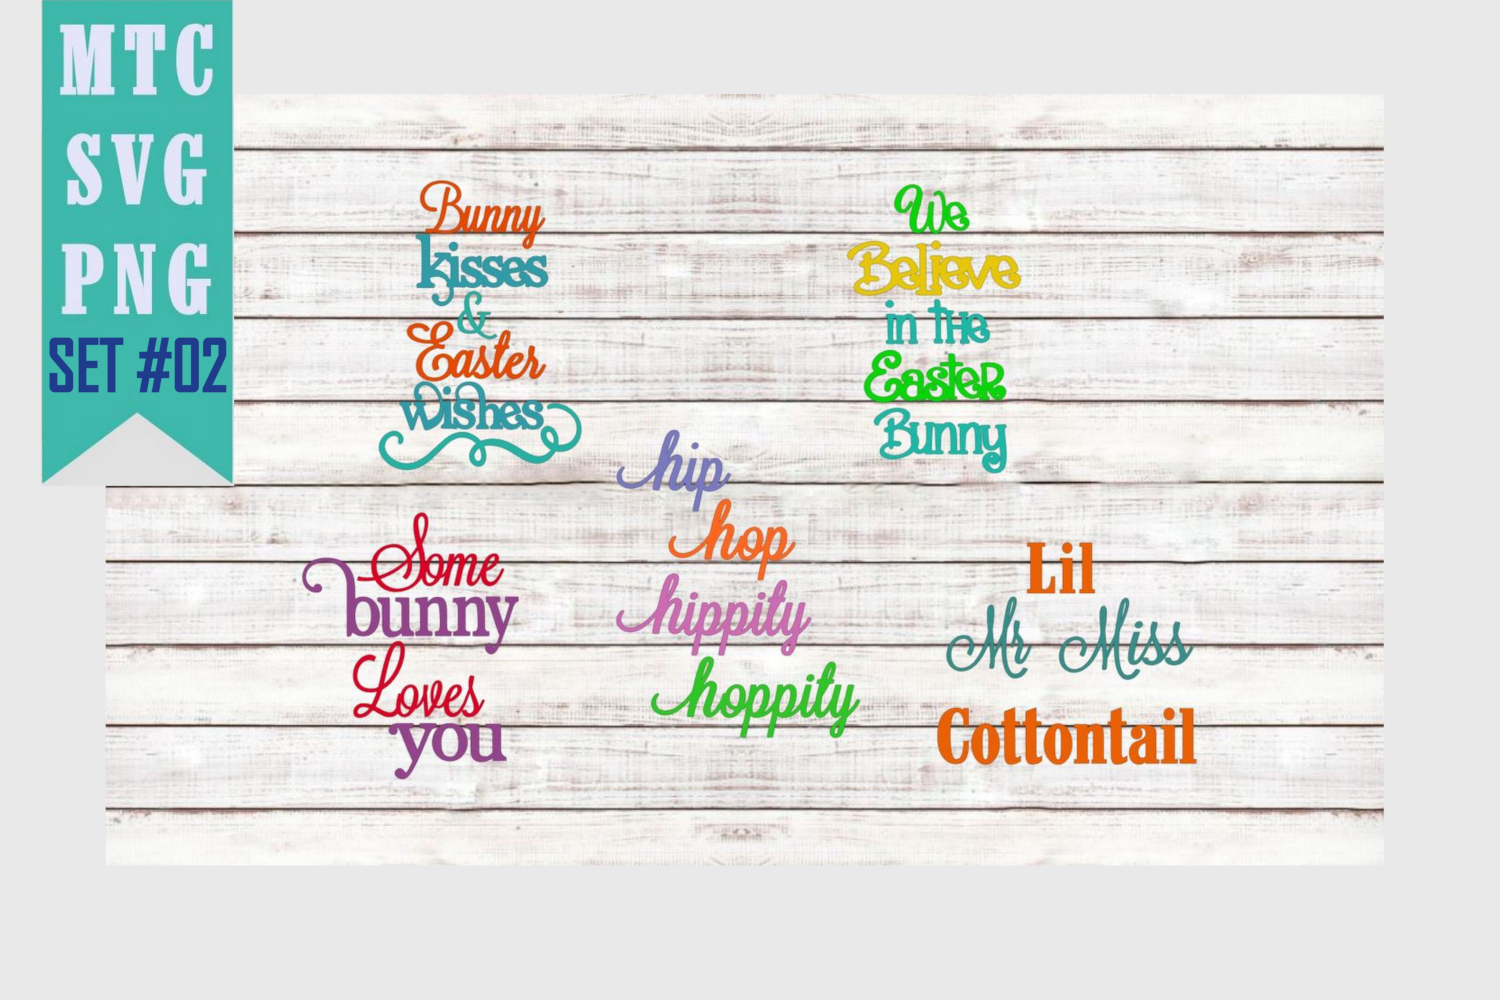 Peeping Easter Bunny Set #2 with Sayings Set #1 SVG Cut File example image 2